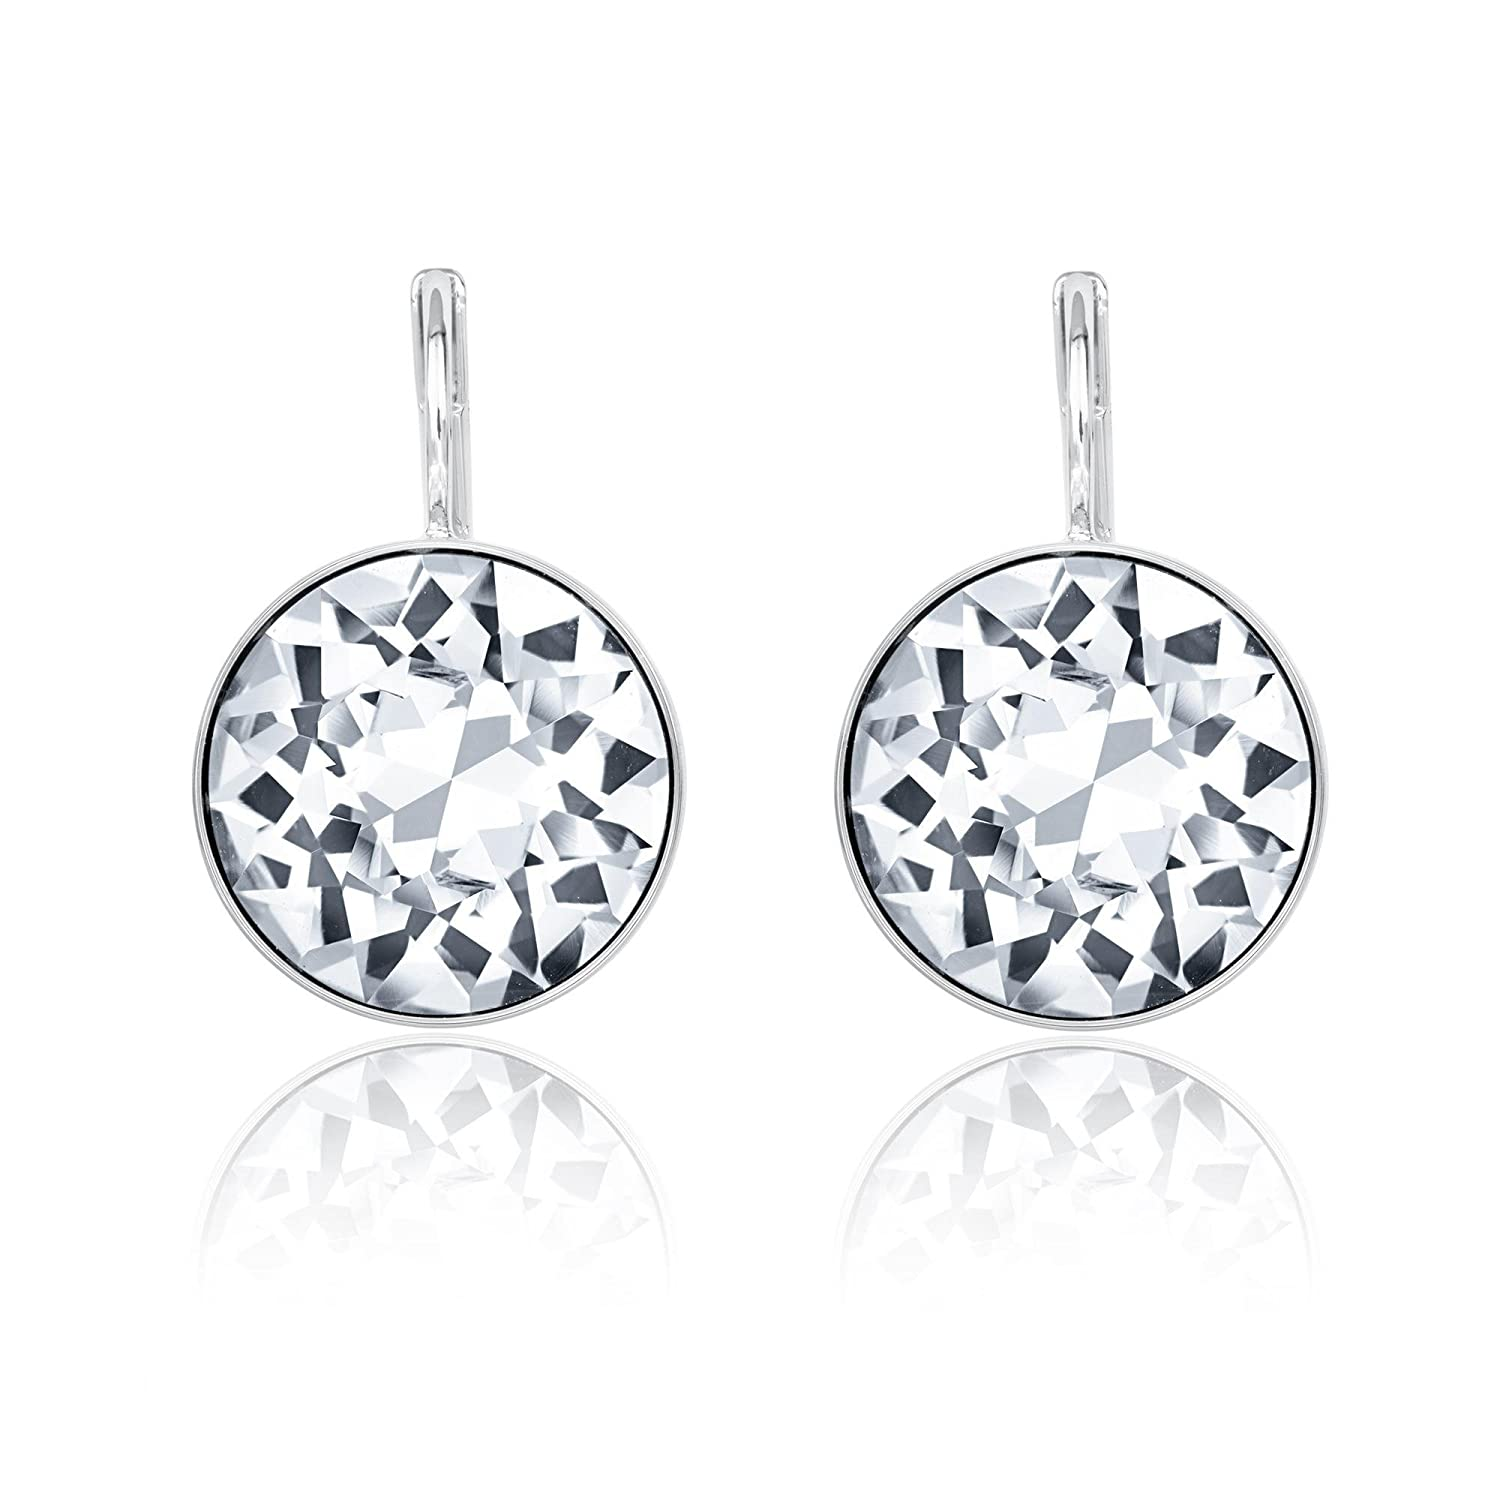 6f68882d1 Amazon.com: Swarovski Bella Pierced Earrings: Jewelry